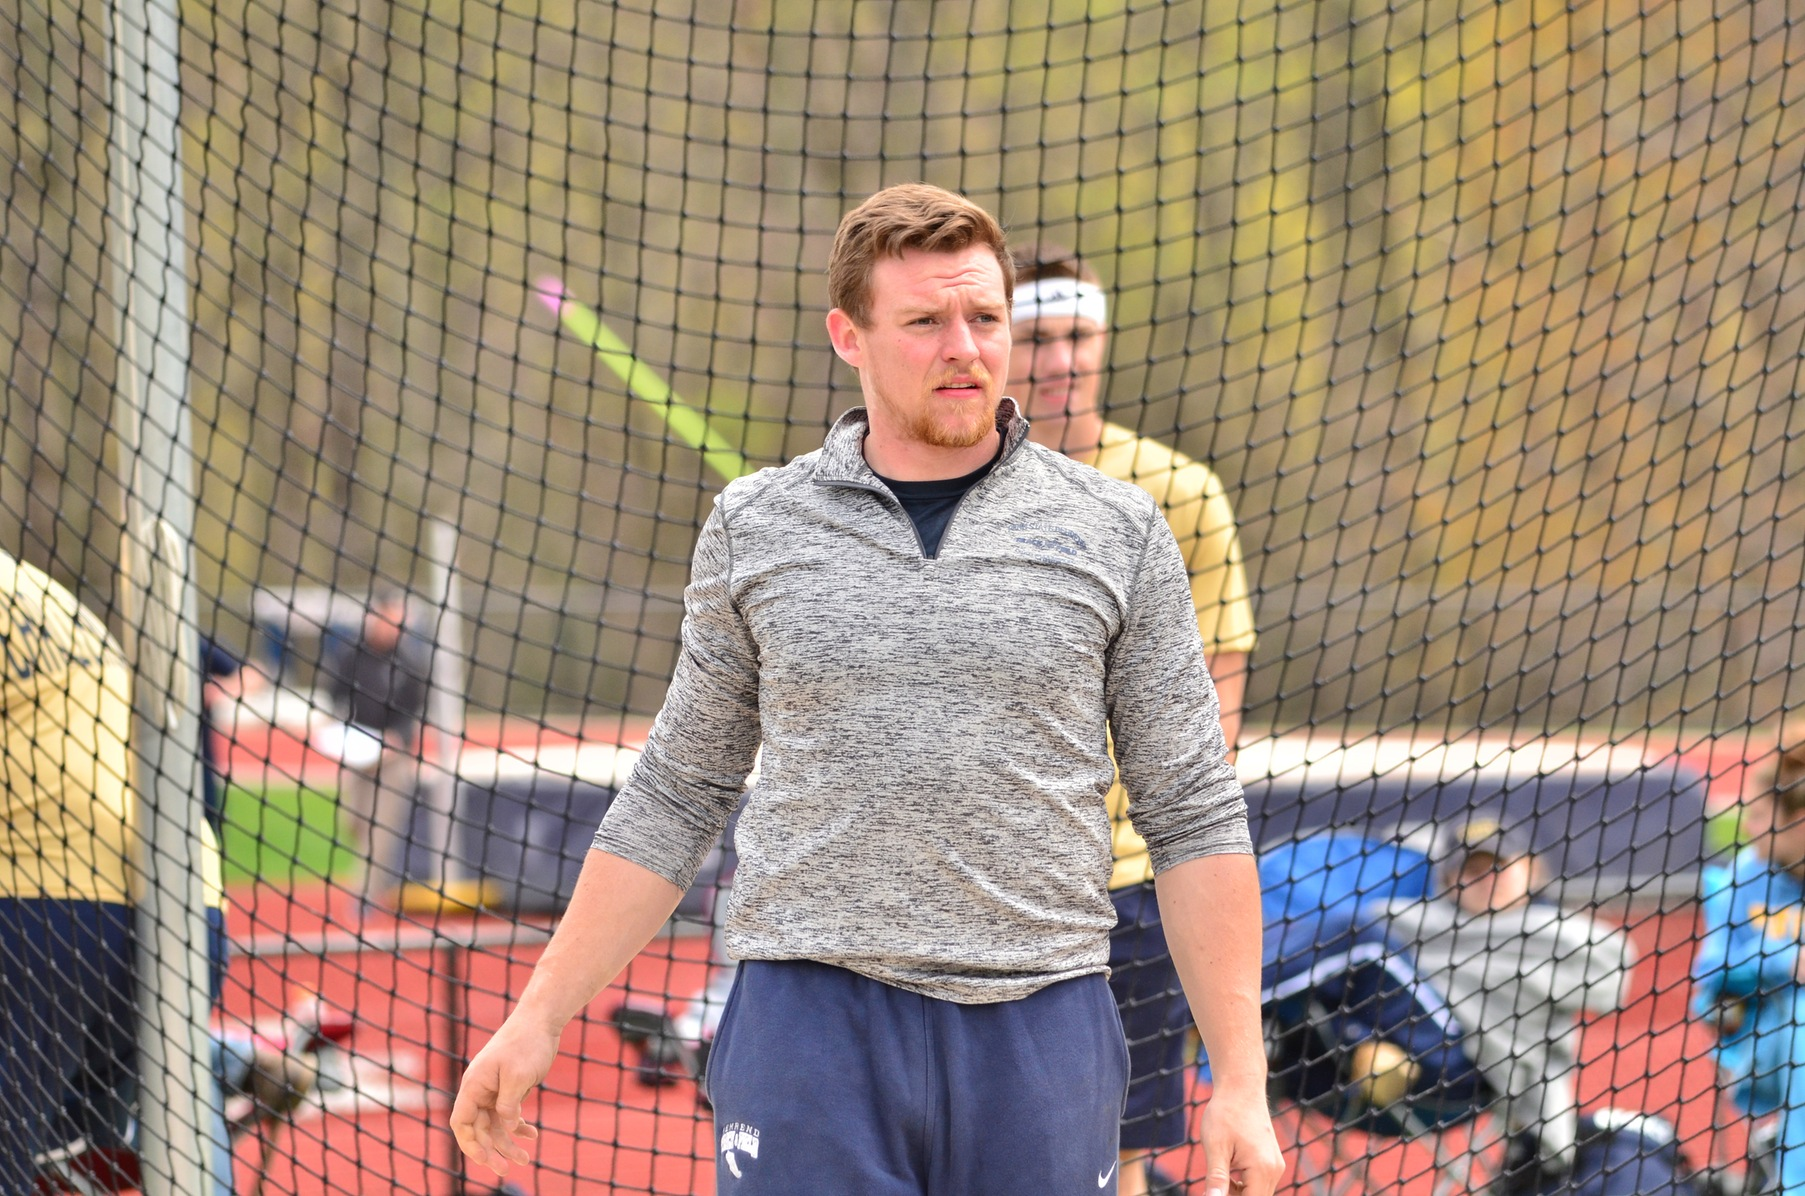 Obenrader National Runner-Up in Javelin